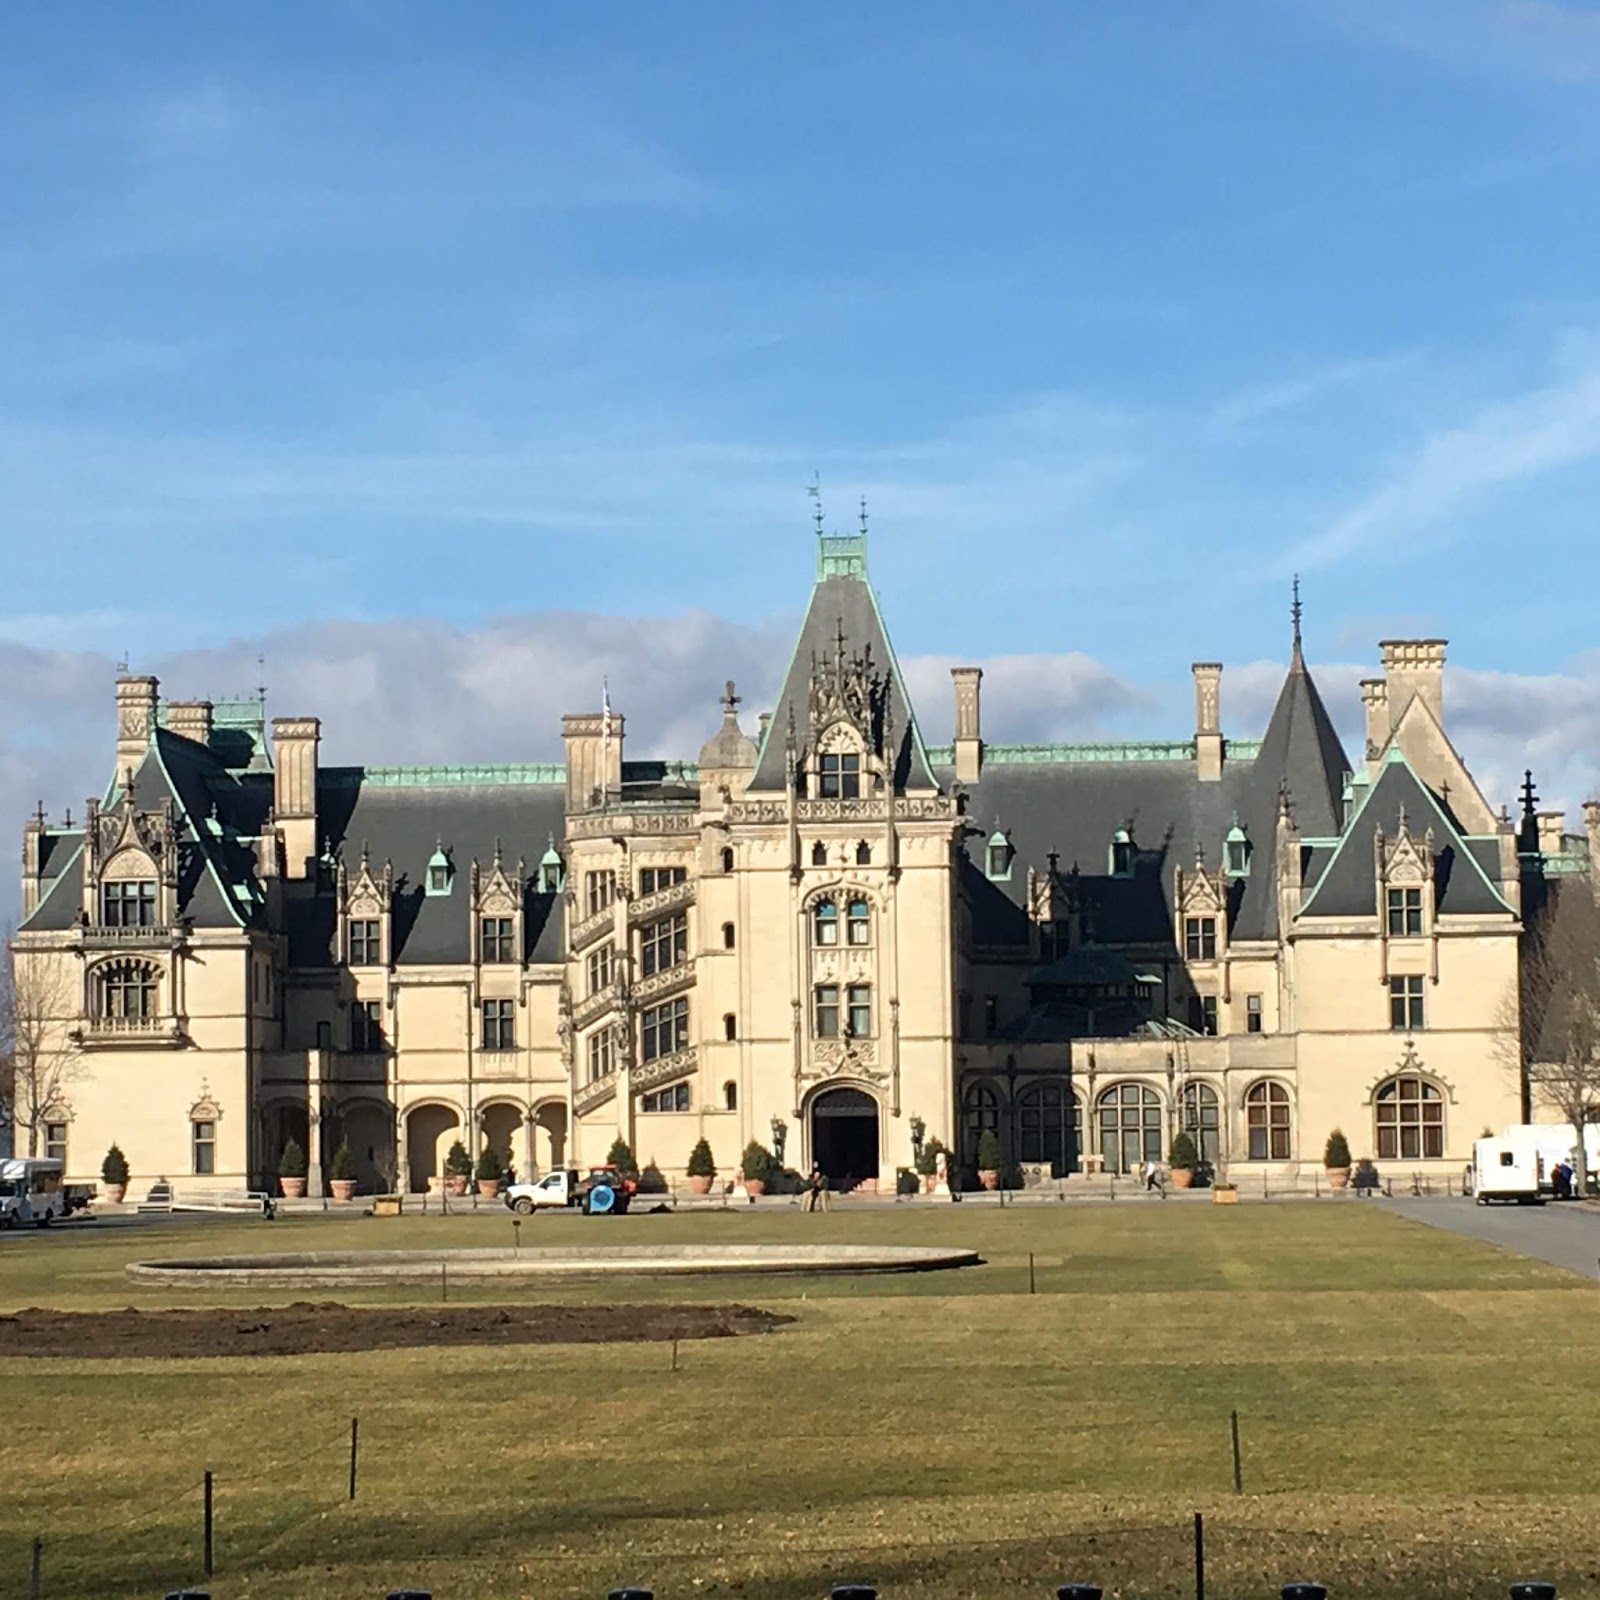 The biltmore highlights